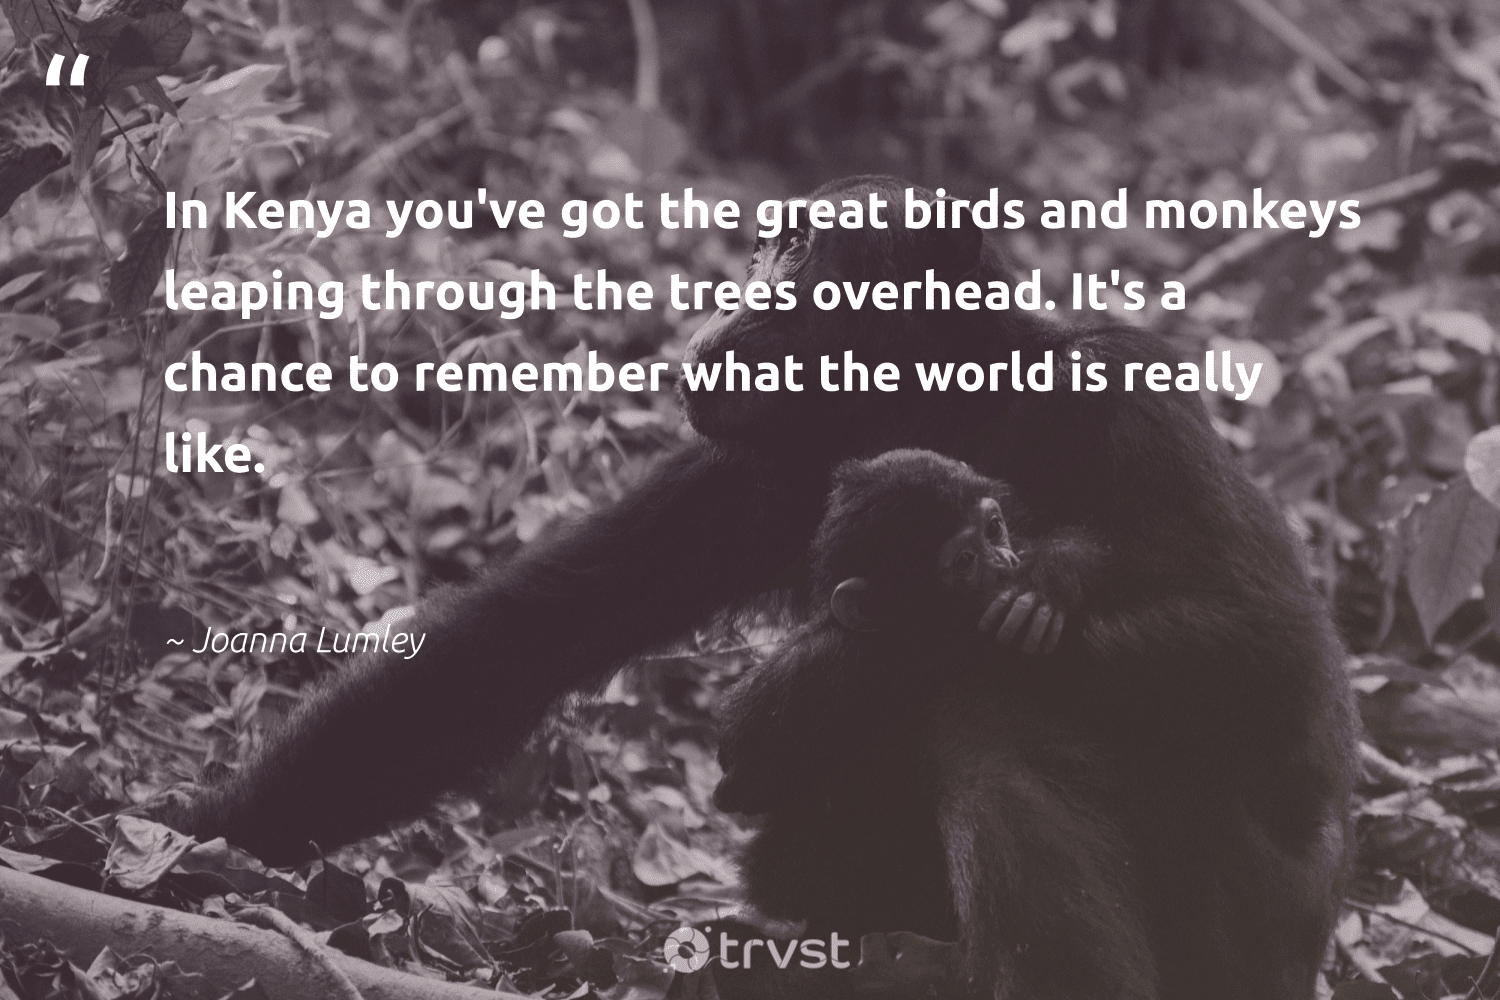 """In Kenya you've got the great birds and monkeys leaping through the trees overhead. It's a chance to remember what the world is really like.""  - Joanna Lumley #trvst #quotes #trees #birds #monkeys #forest #protectnature #natureseekers #impact #arborarmy #majesticwildlife #earth"